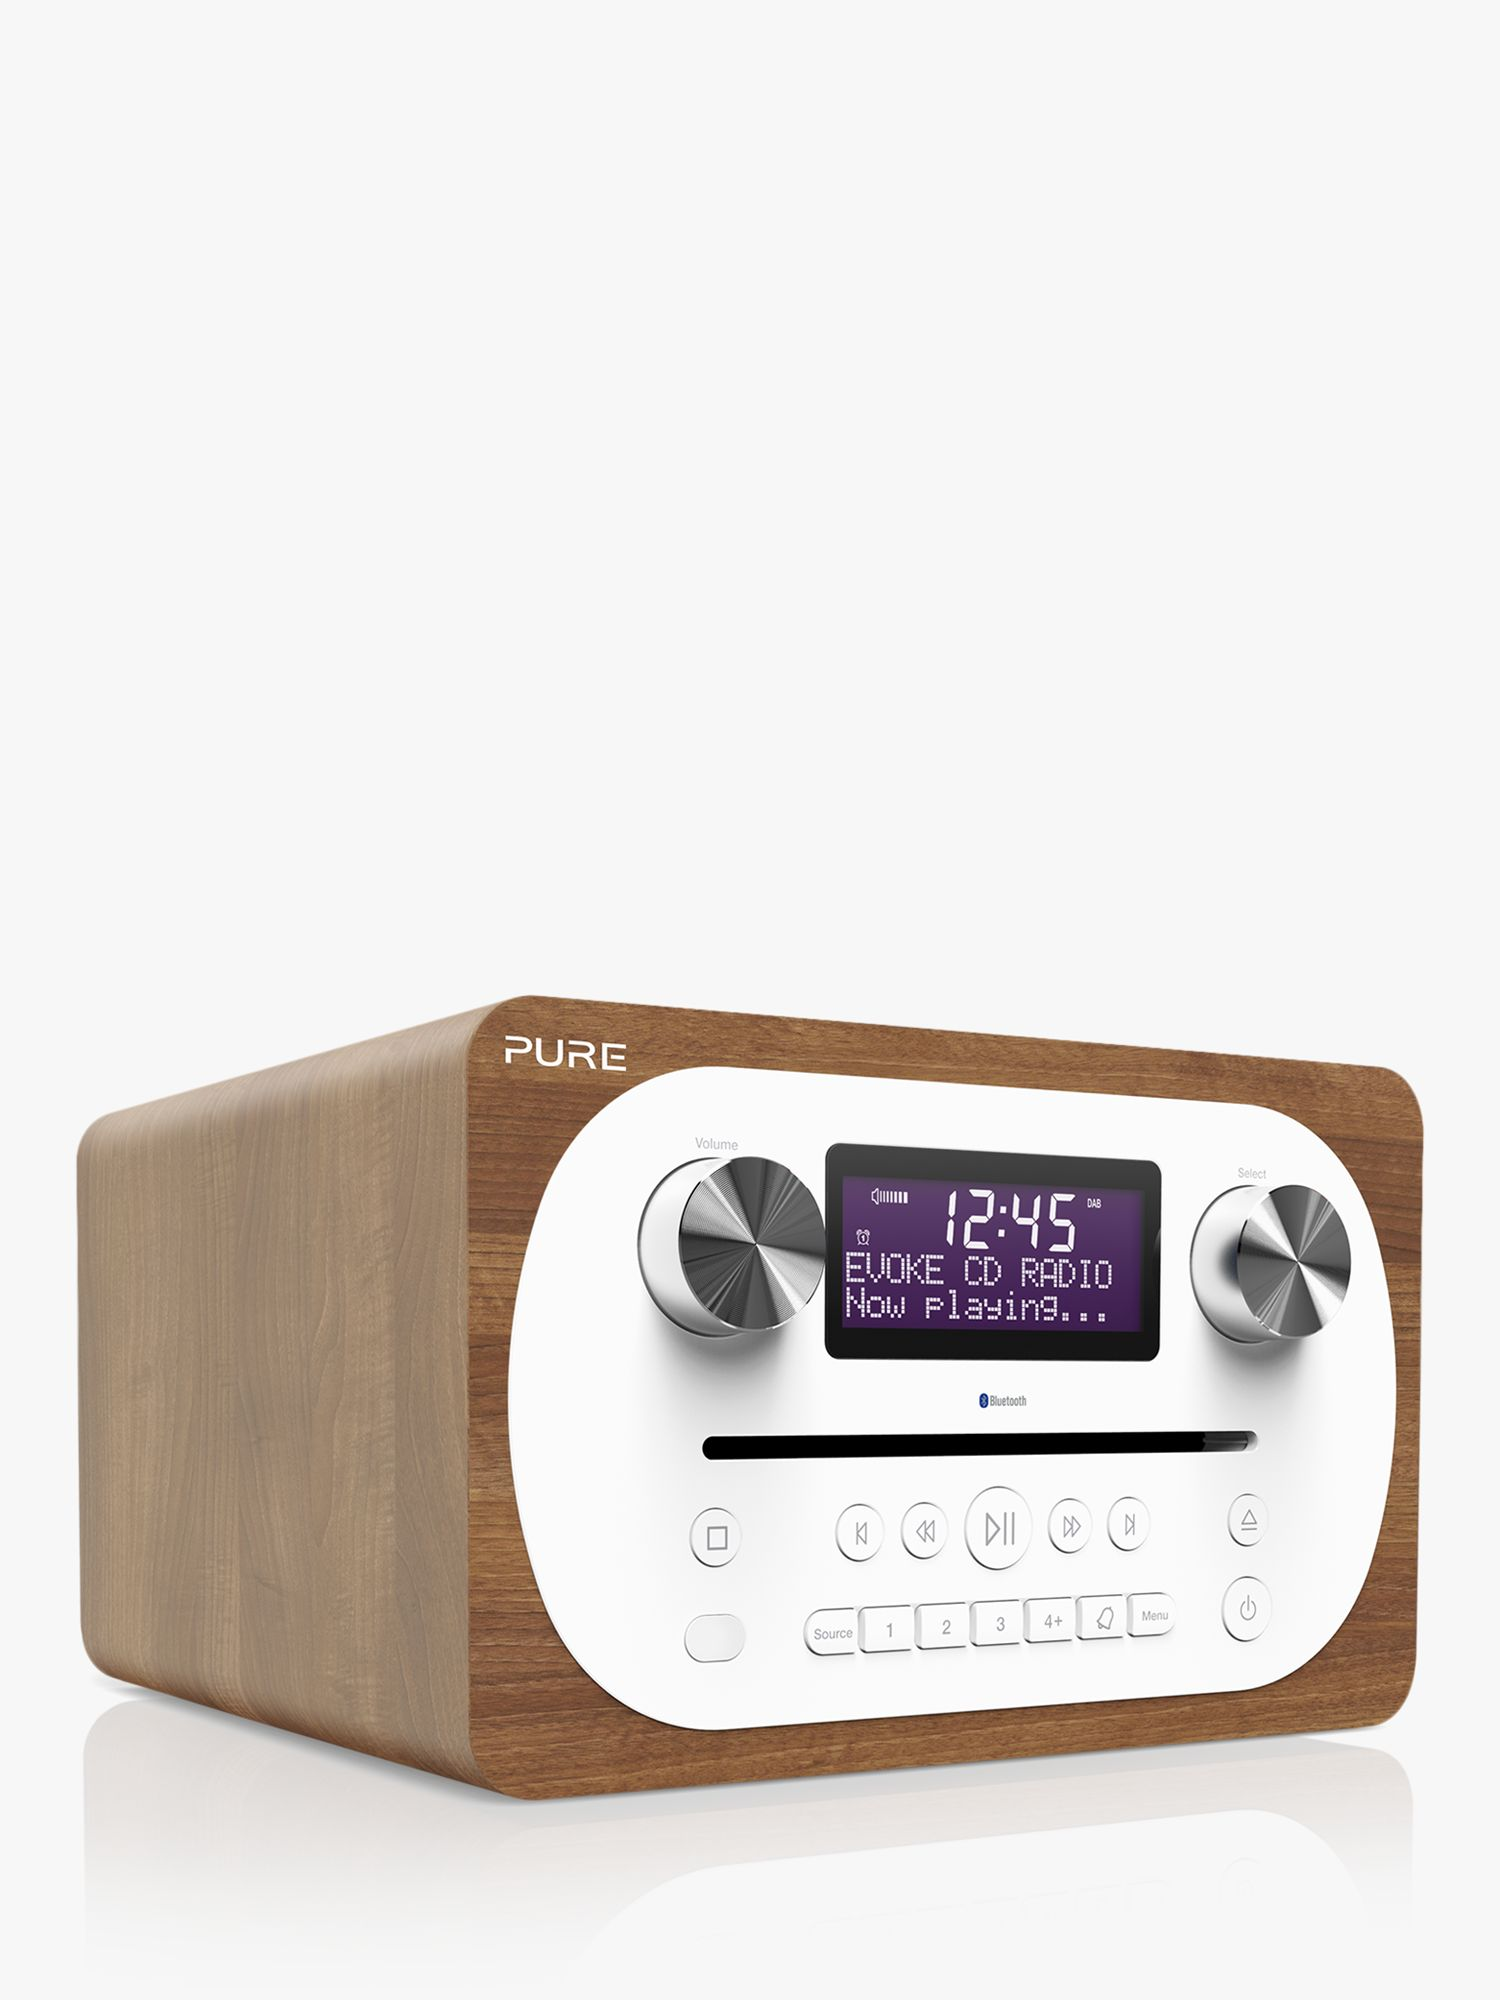 Pure Pure Evoke C-D4 DAB+/FM Bluetooth Compact All-In-One Music System With Remote Control, Walnut